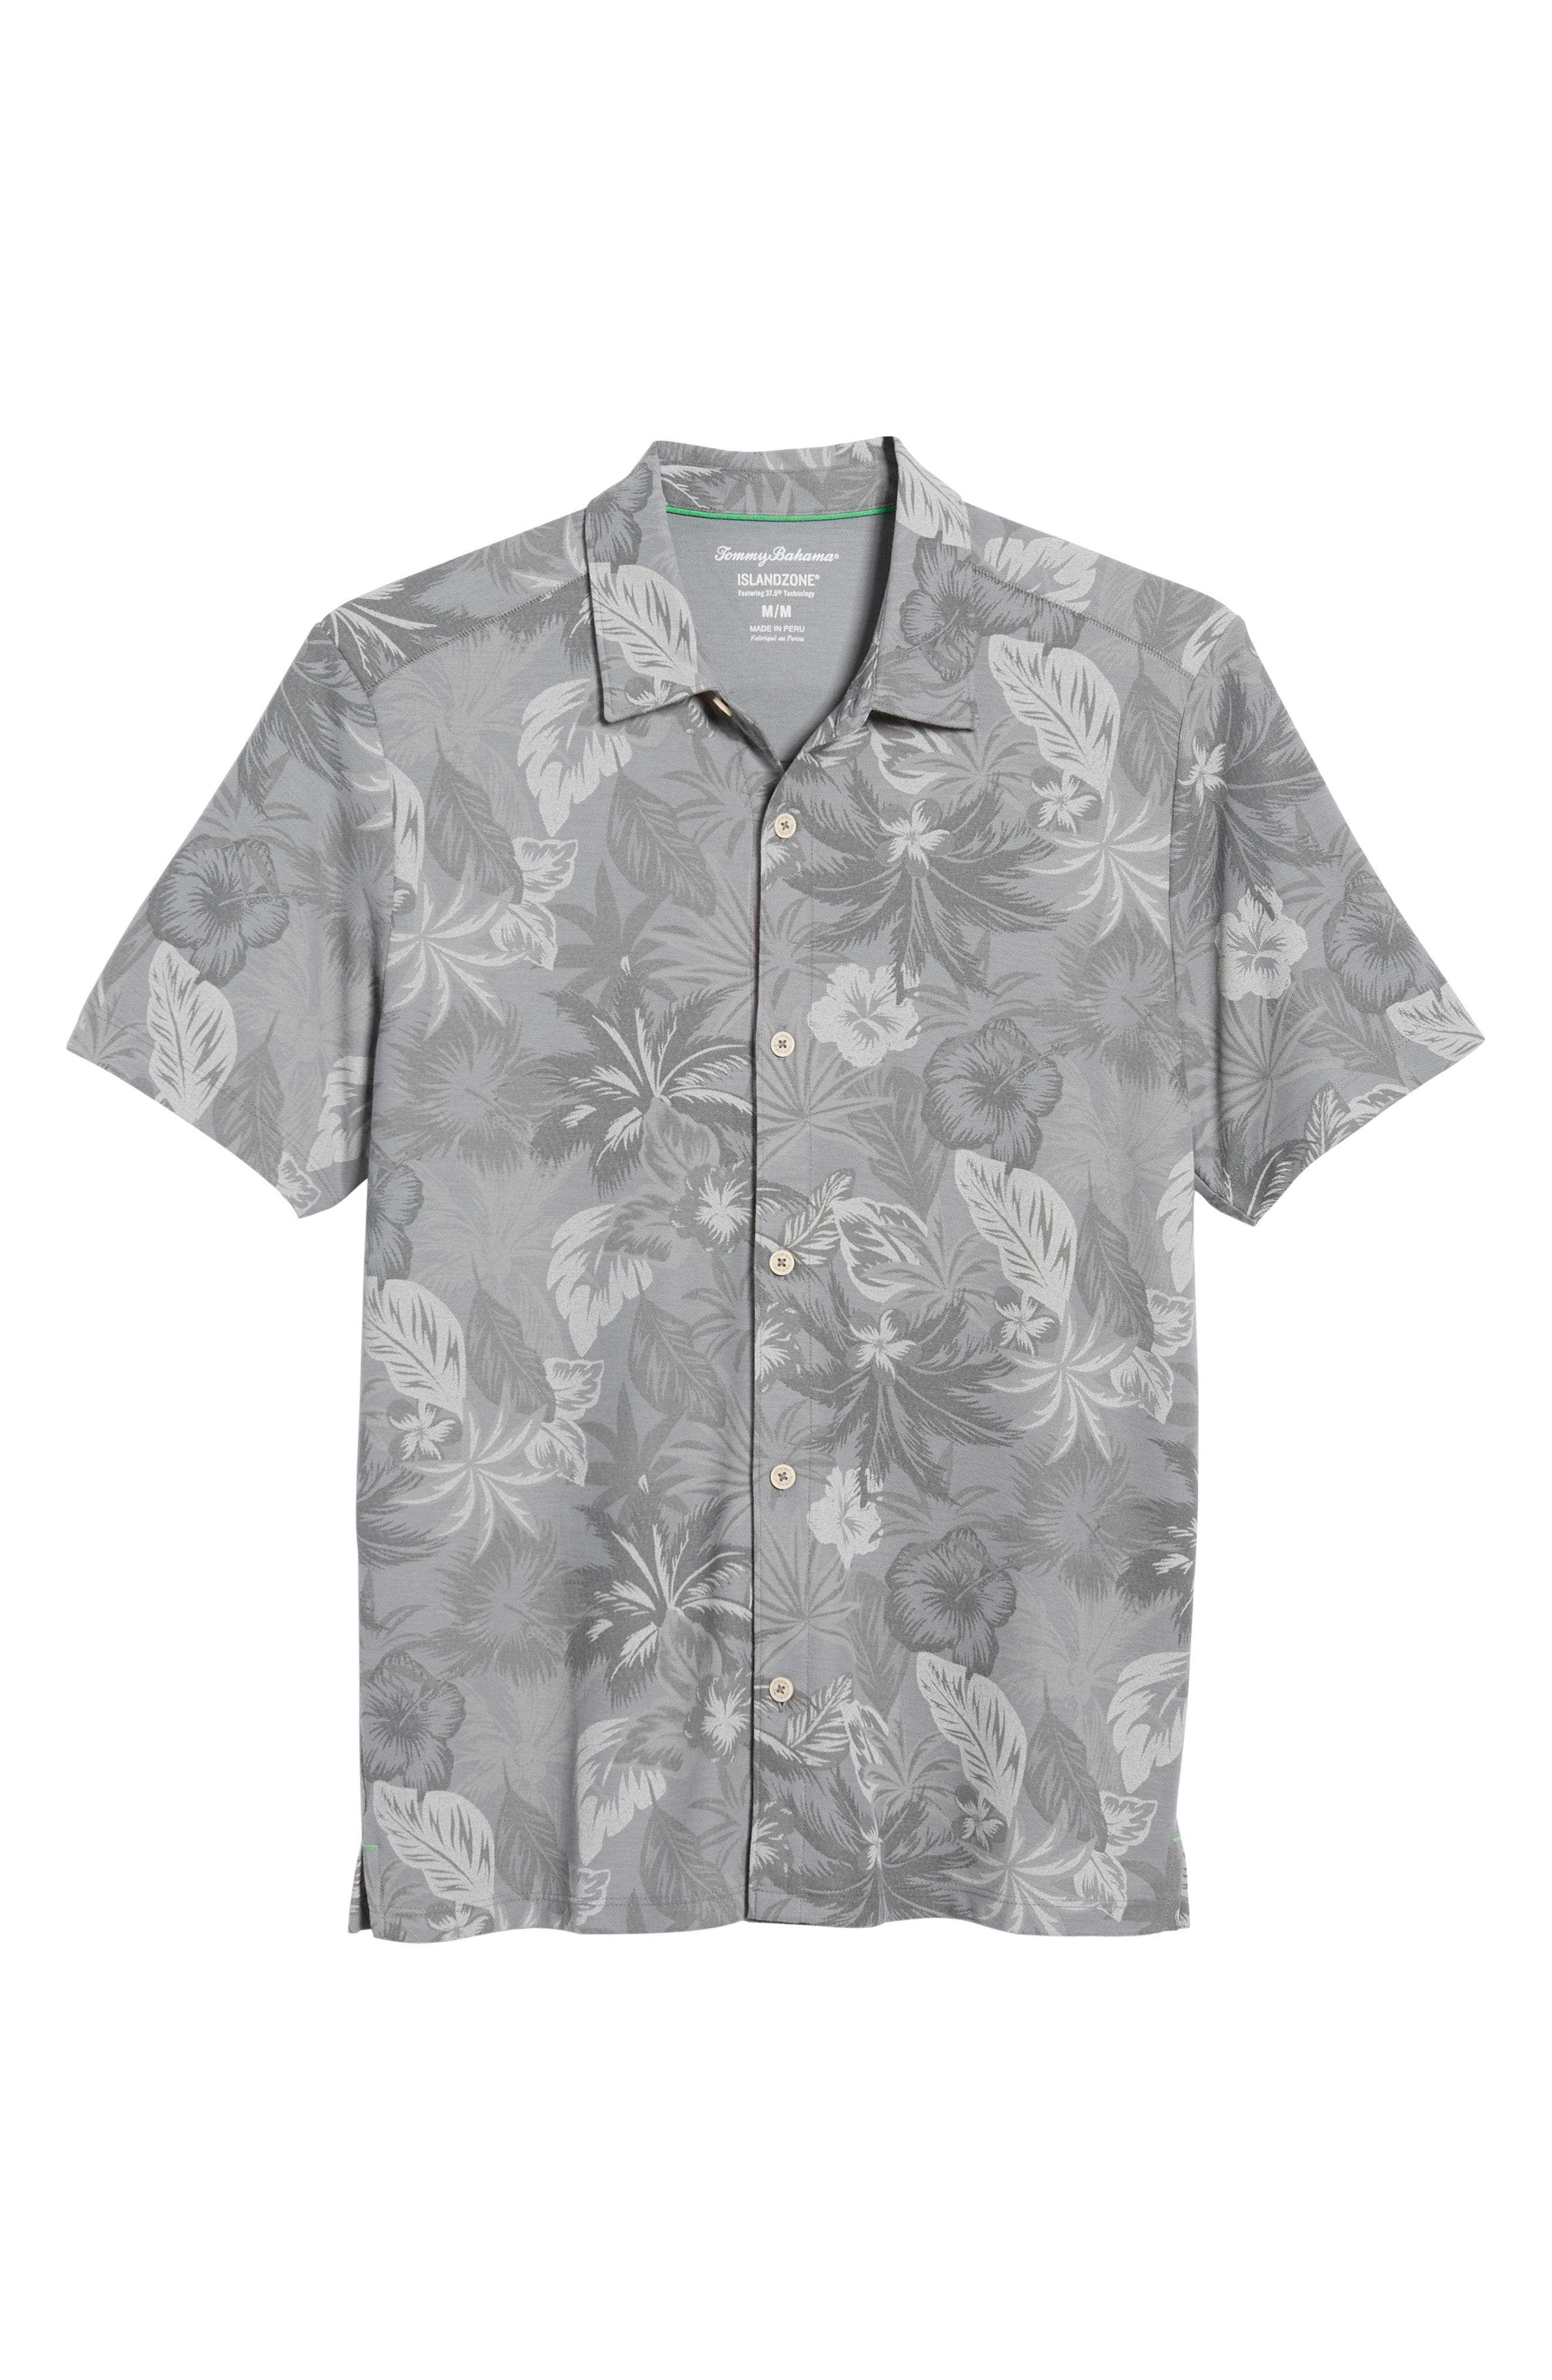 Fuego Floral Camp Shirt,                             Alternate thumbnail 6, color,                             Iced Slate